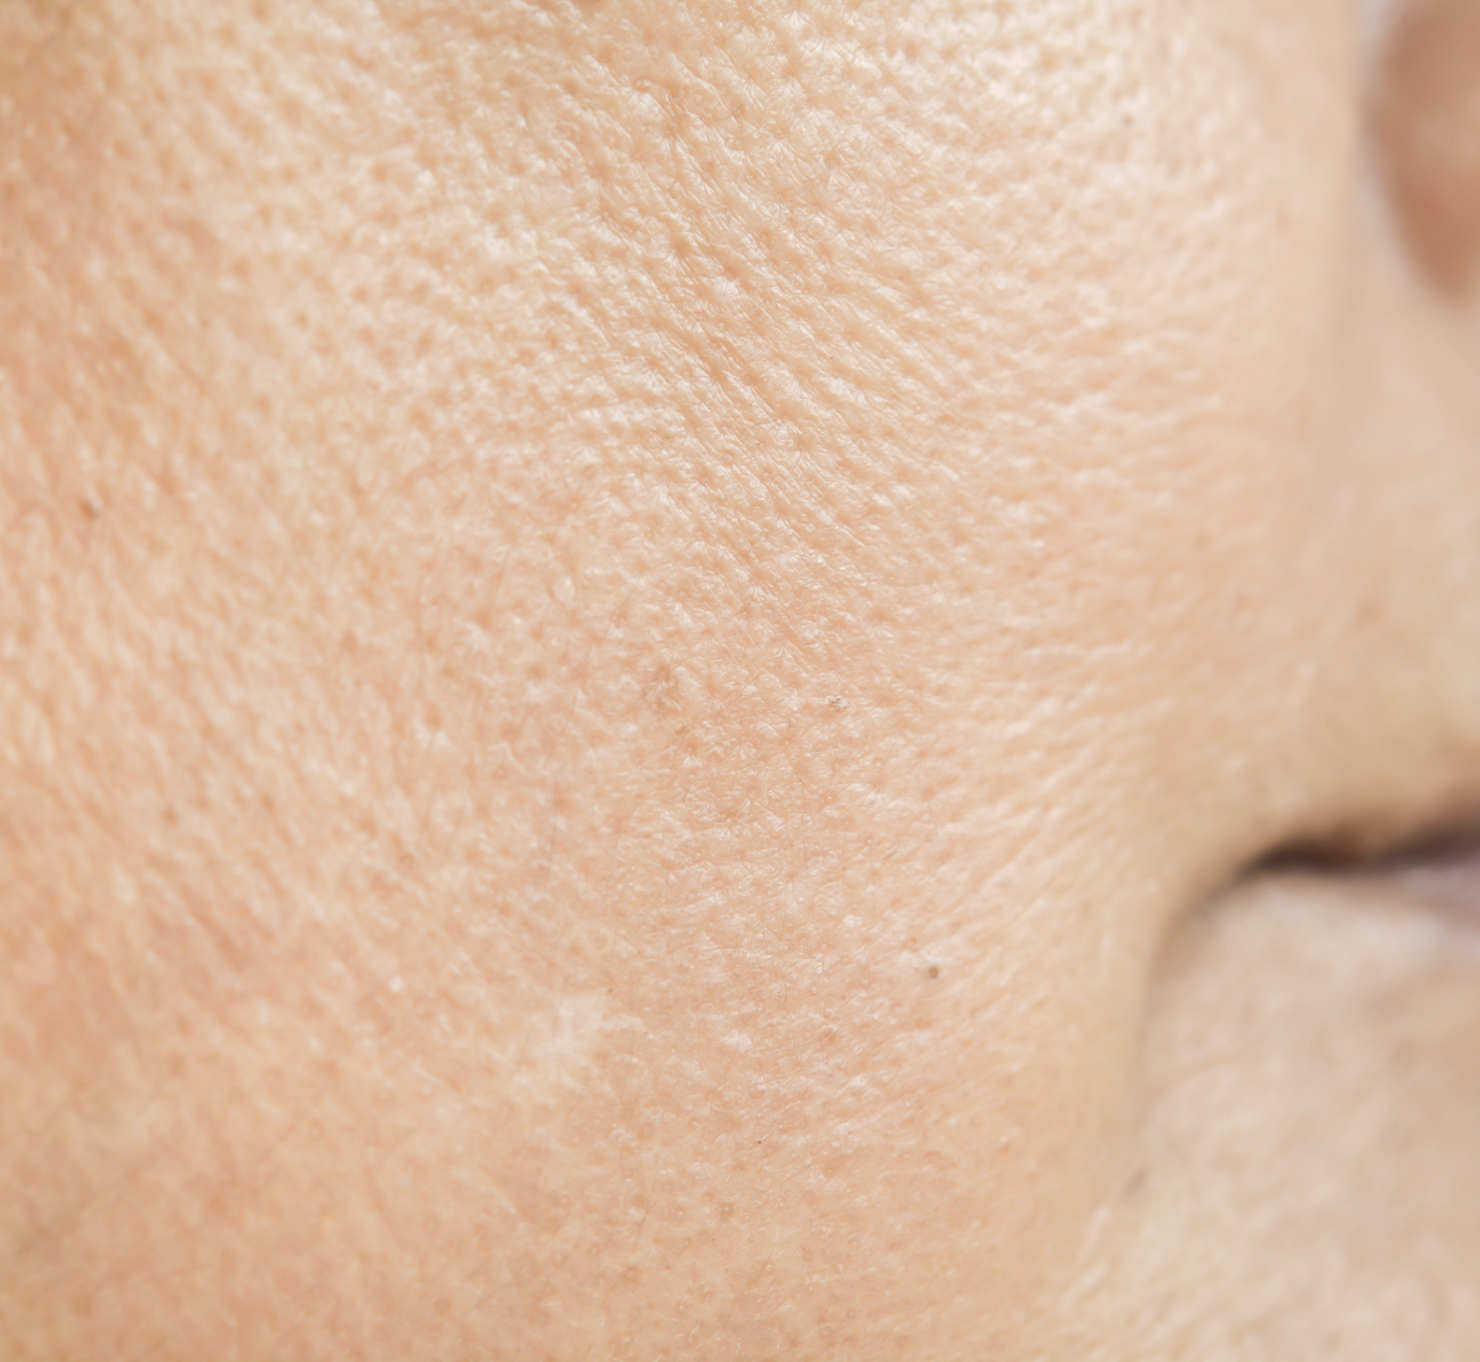 How to minimise pores: The products and treatments to look for